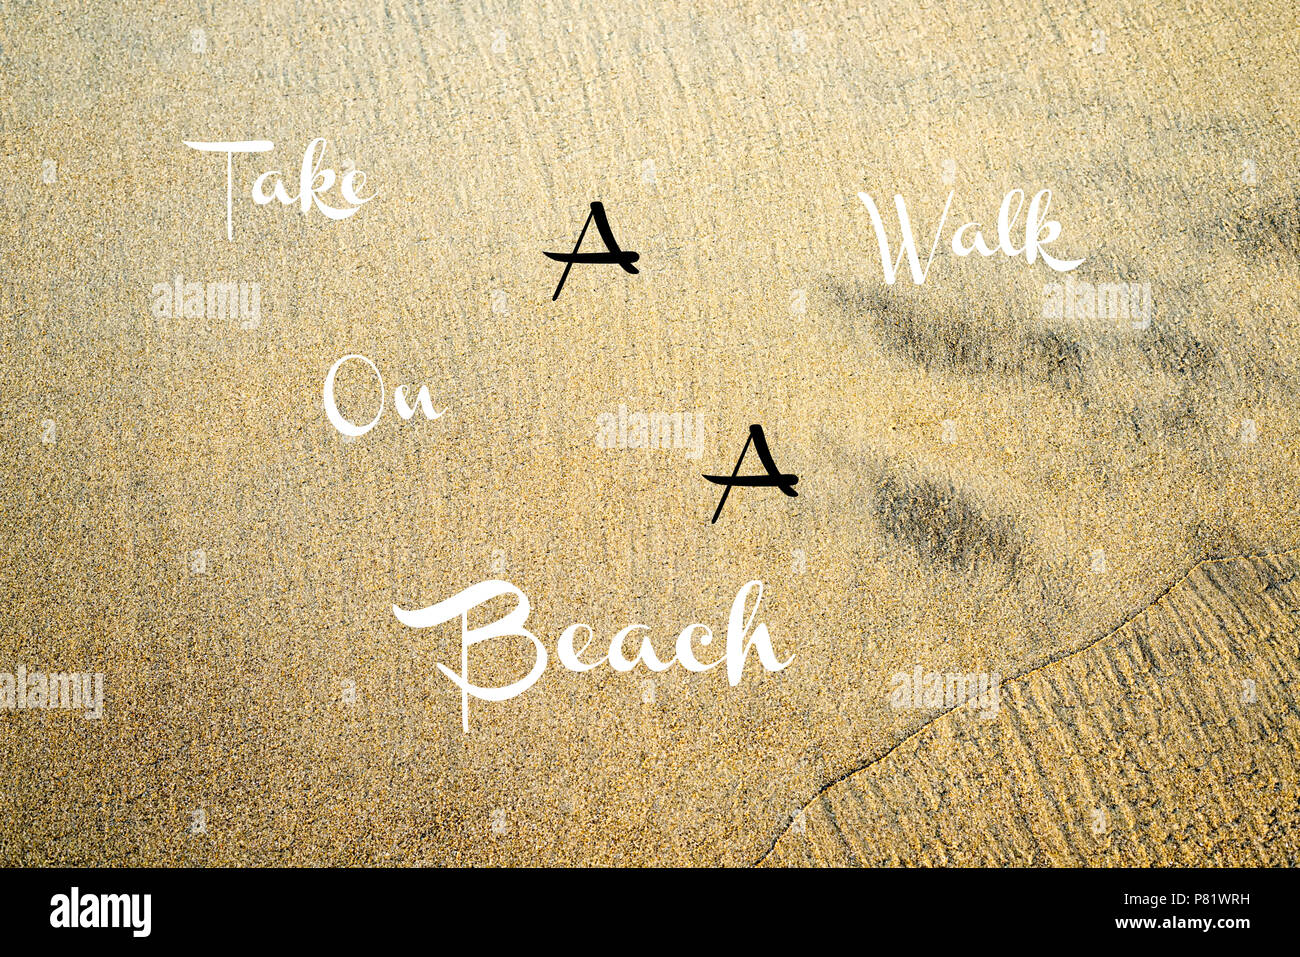 Words (typography) placed on a photograph background of a California beach. - Stock Image